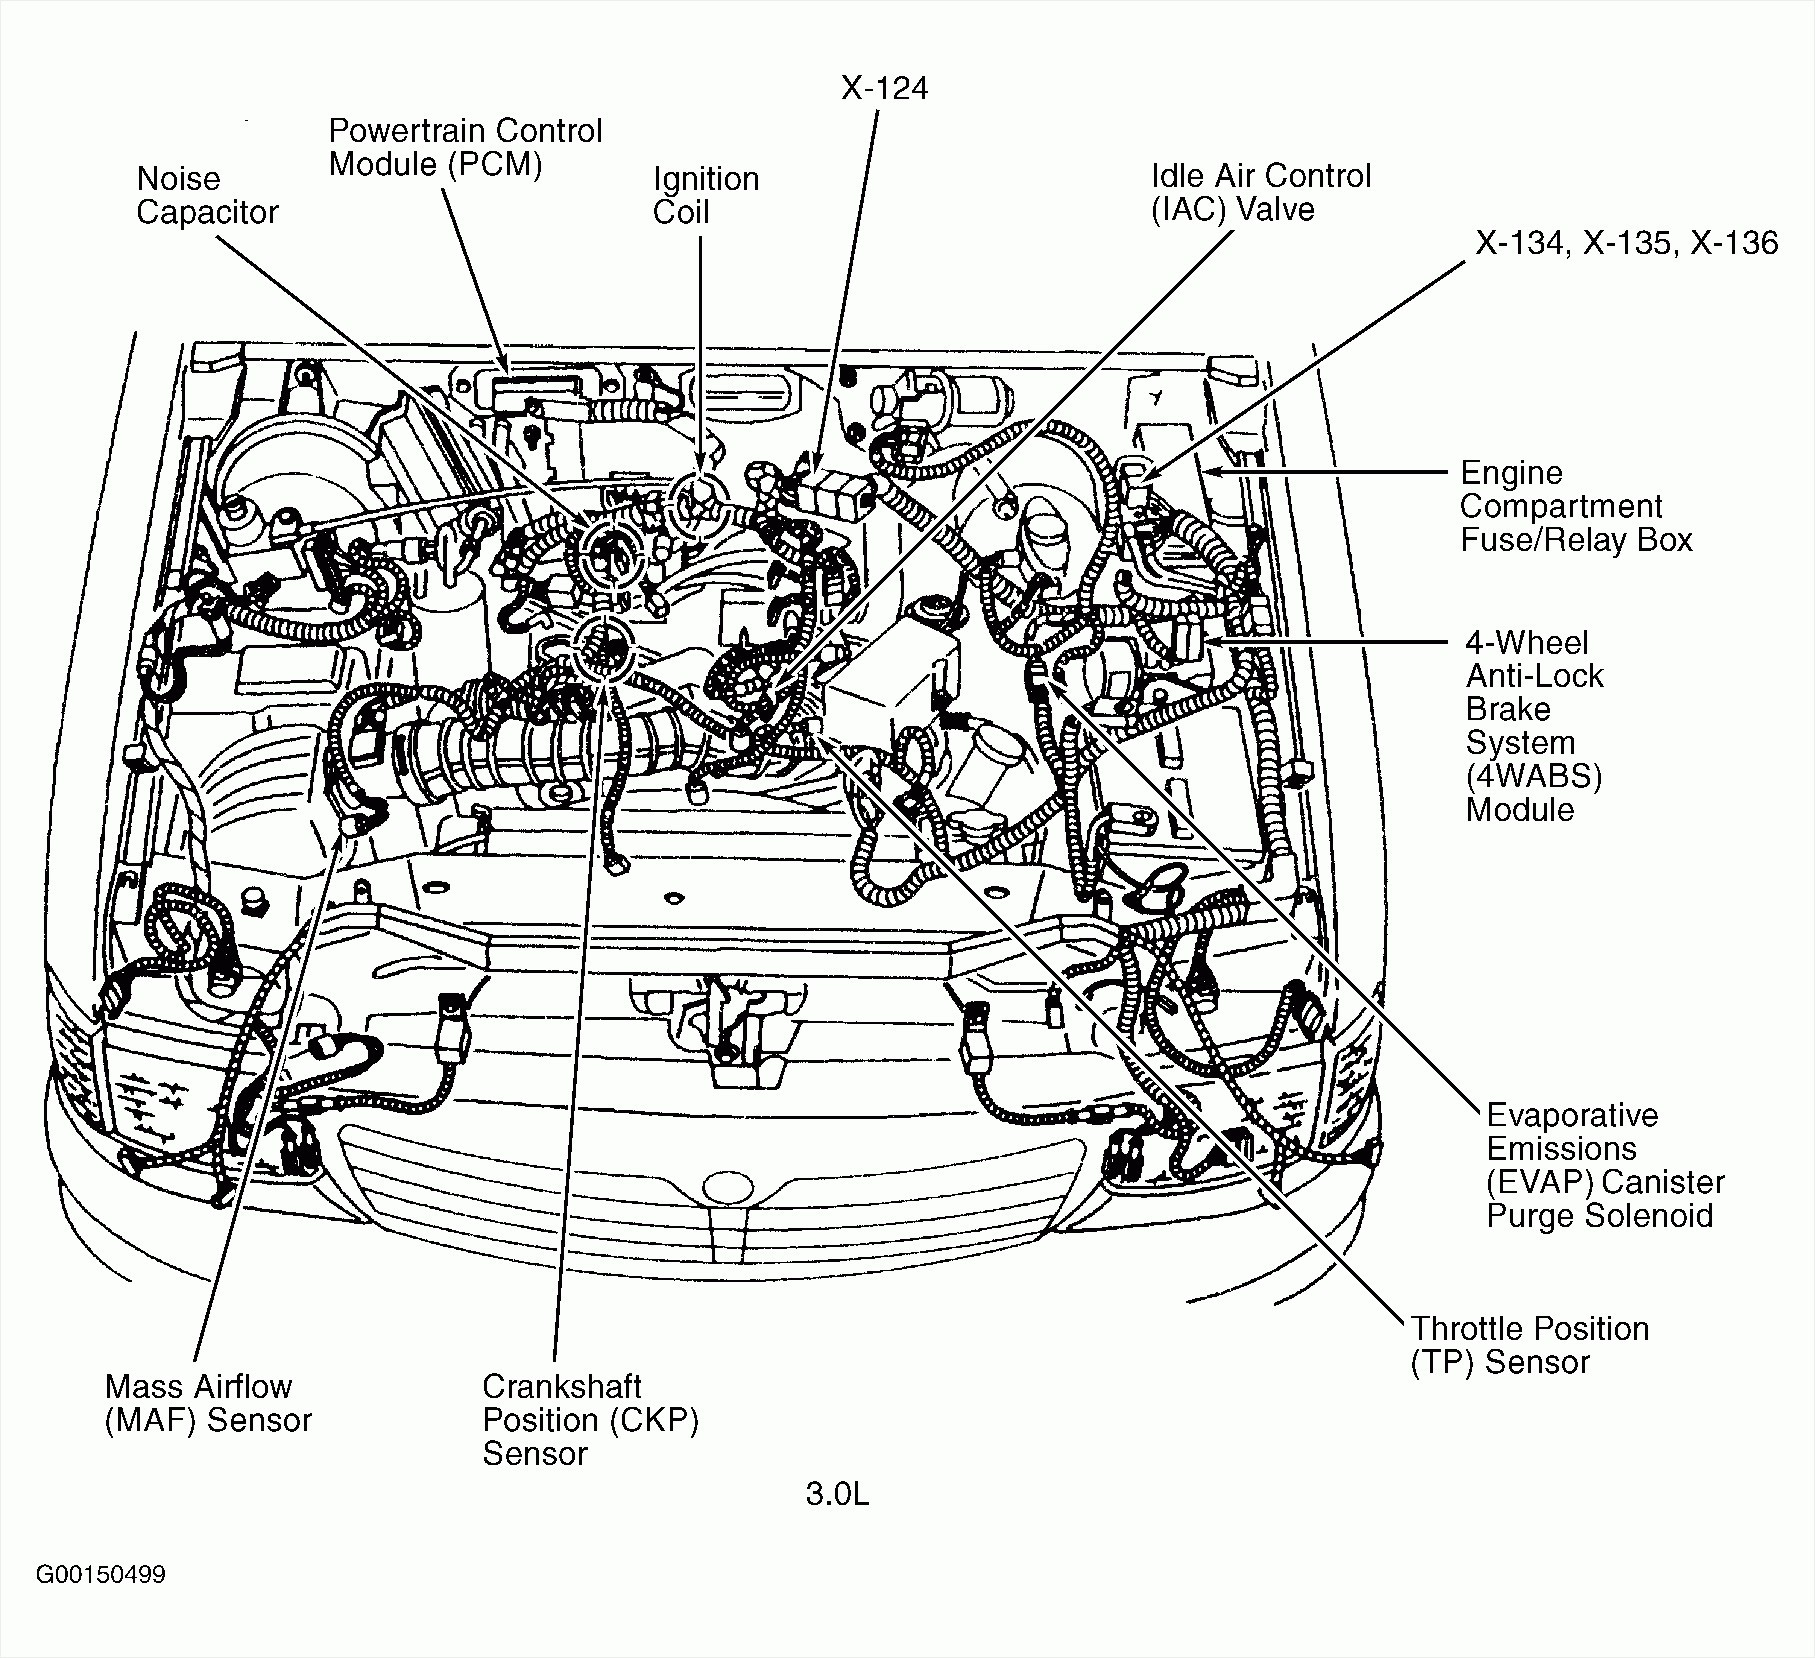 hight resolution of 96 chevy camaro v6 engine diagram